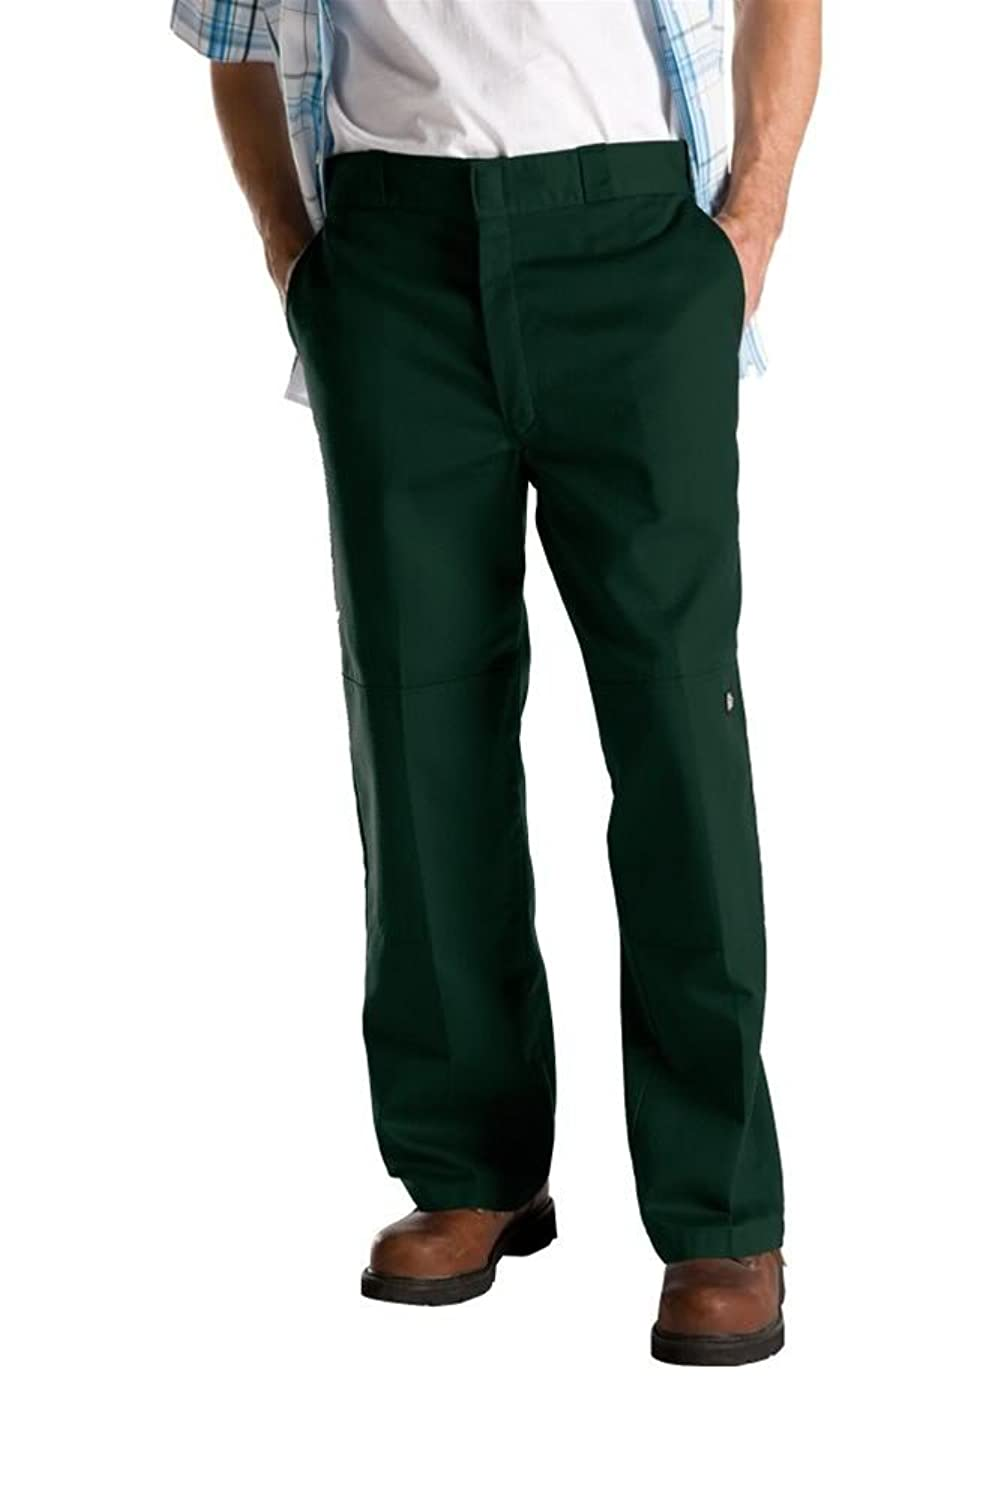 85-283 Dickies Loose Fit Double Knee Work Pant